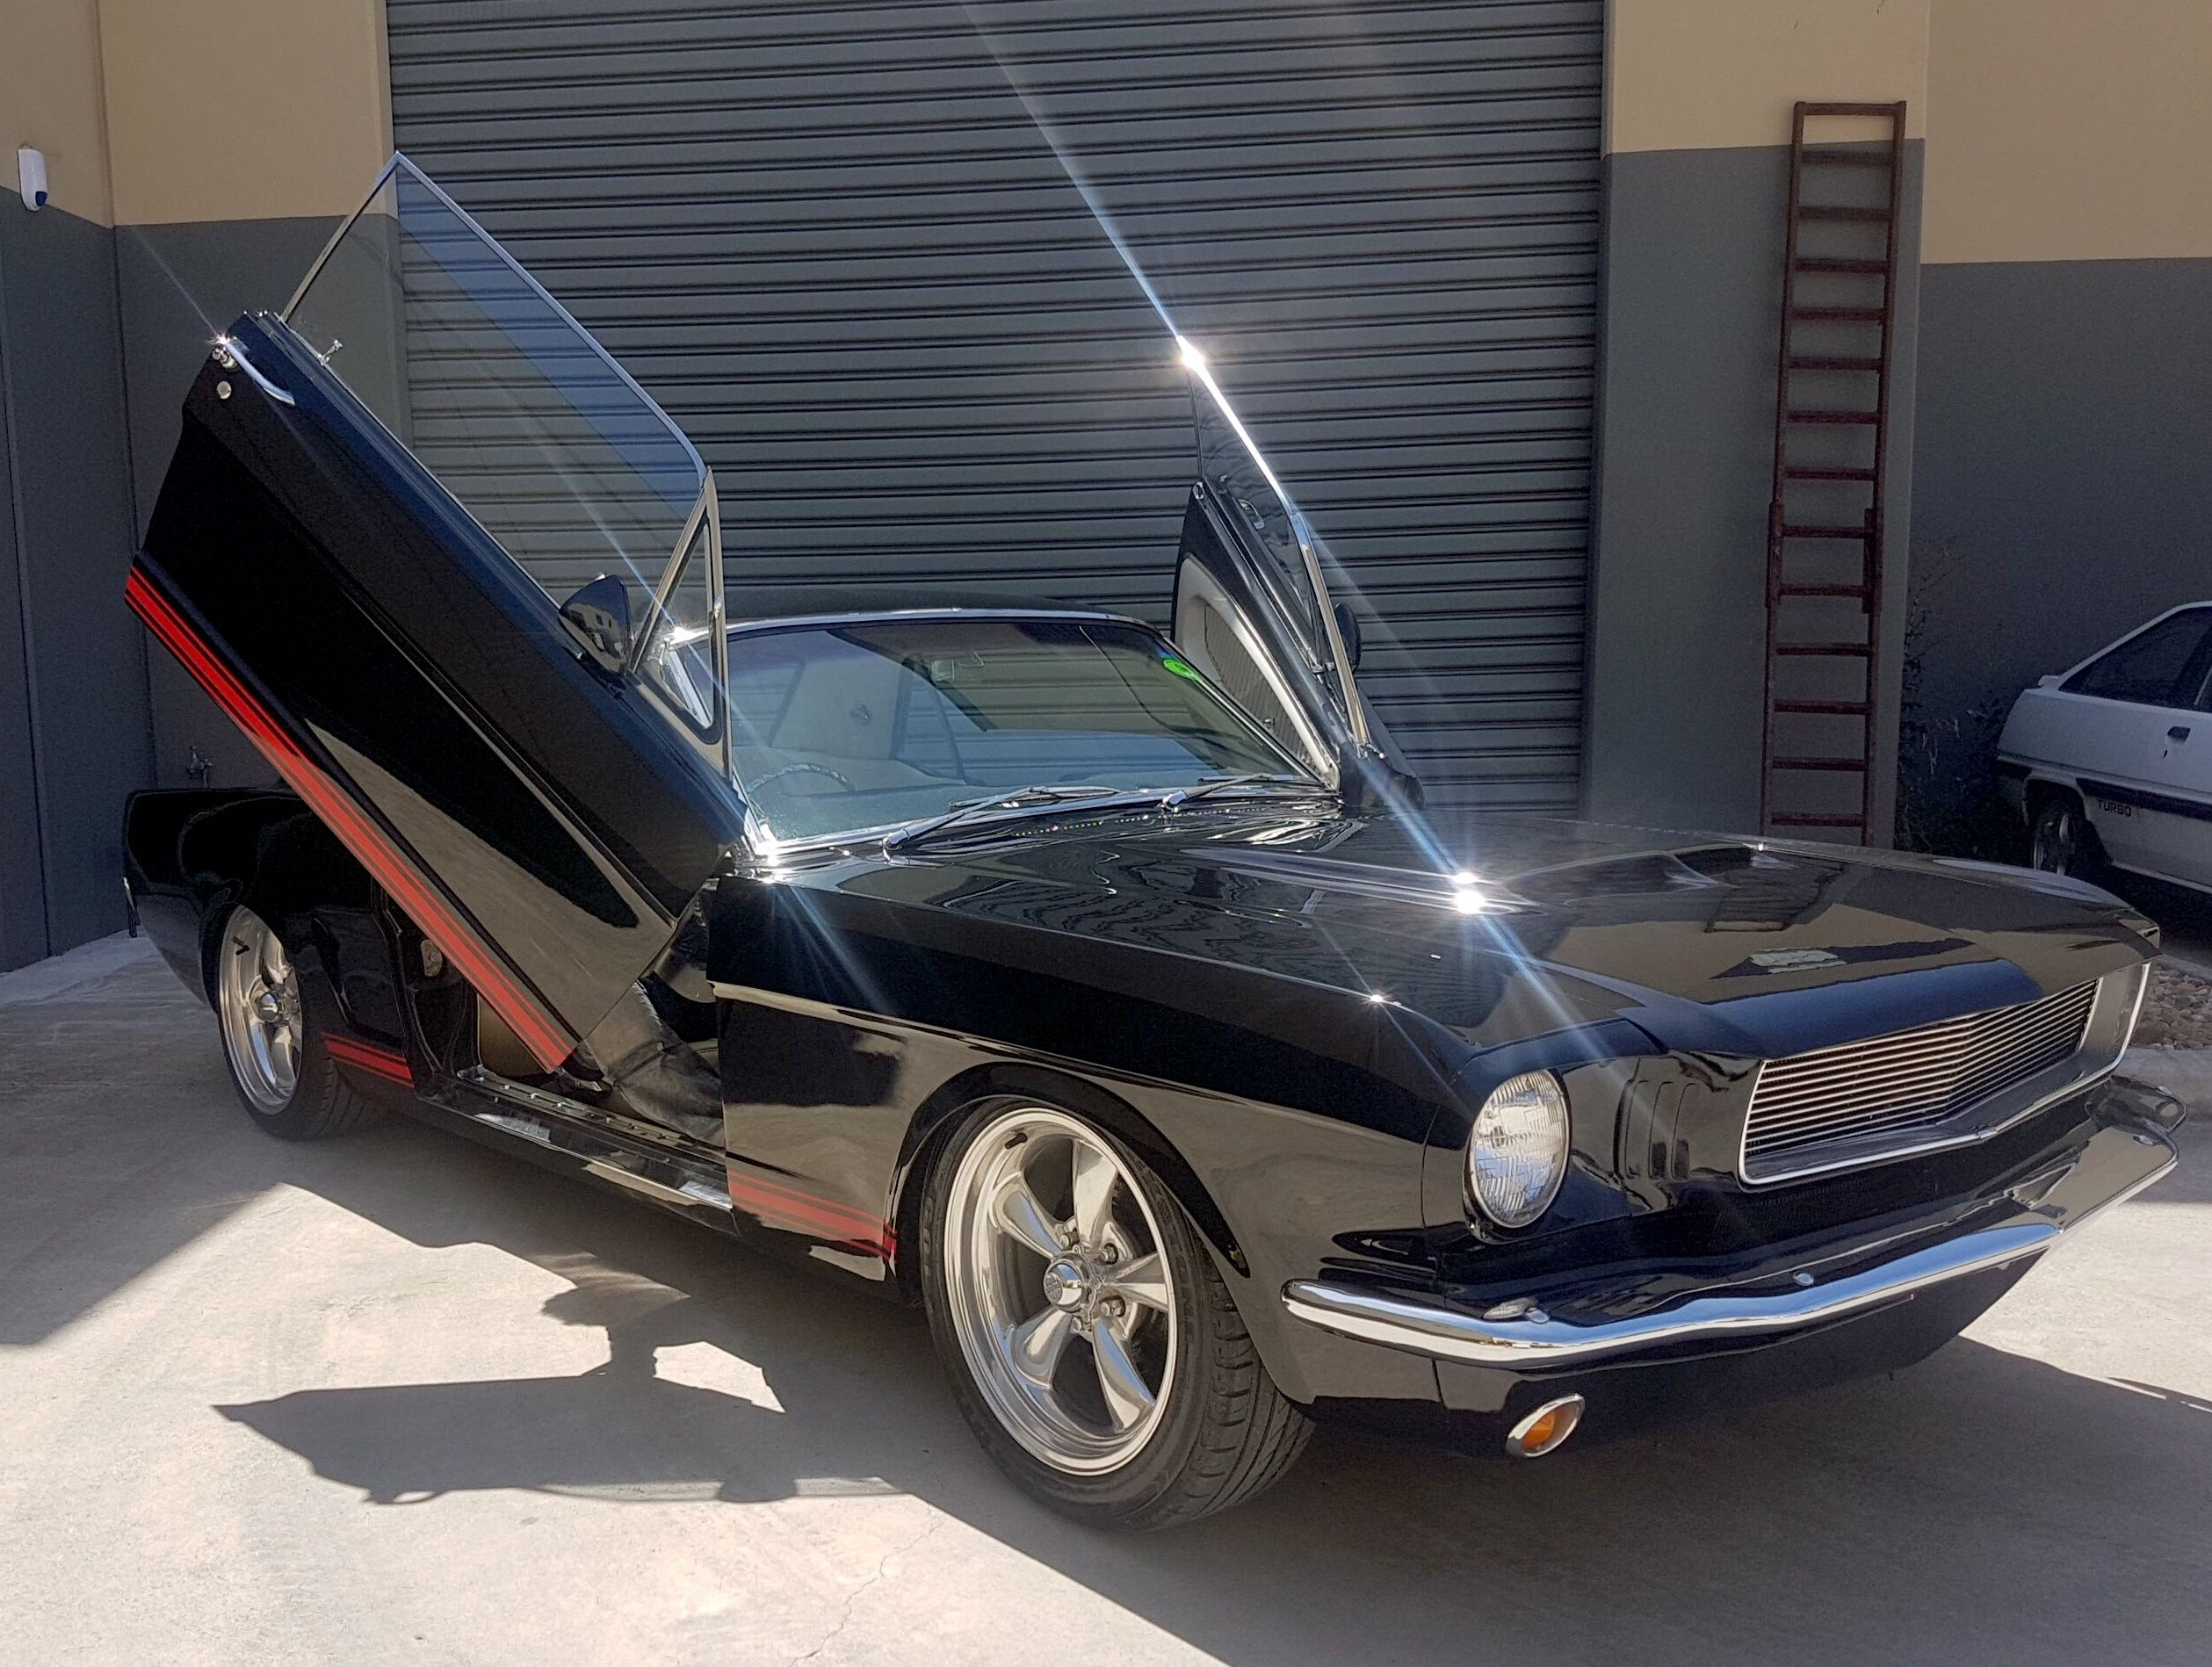 Mustangs In Black 1966 Ford Mustang Hardtop Coupe 1966 Ford Mustang Ford Mustang 1966 Mustang Coupe